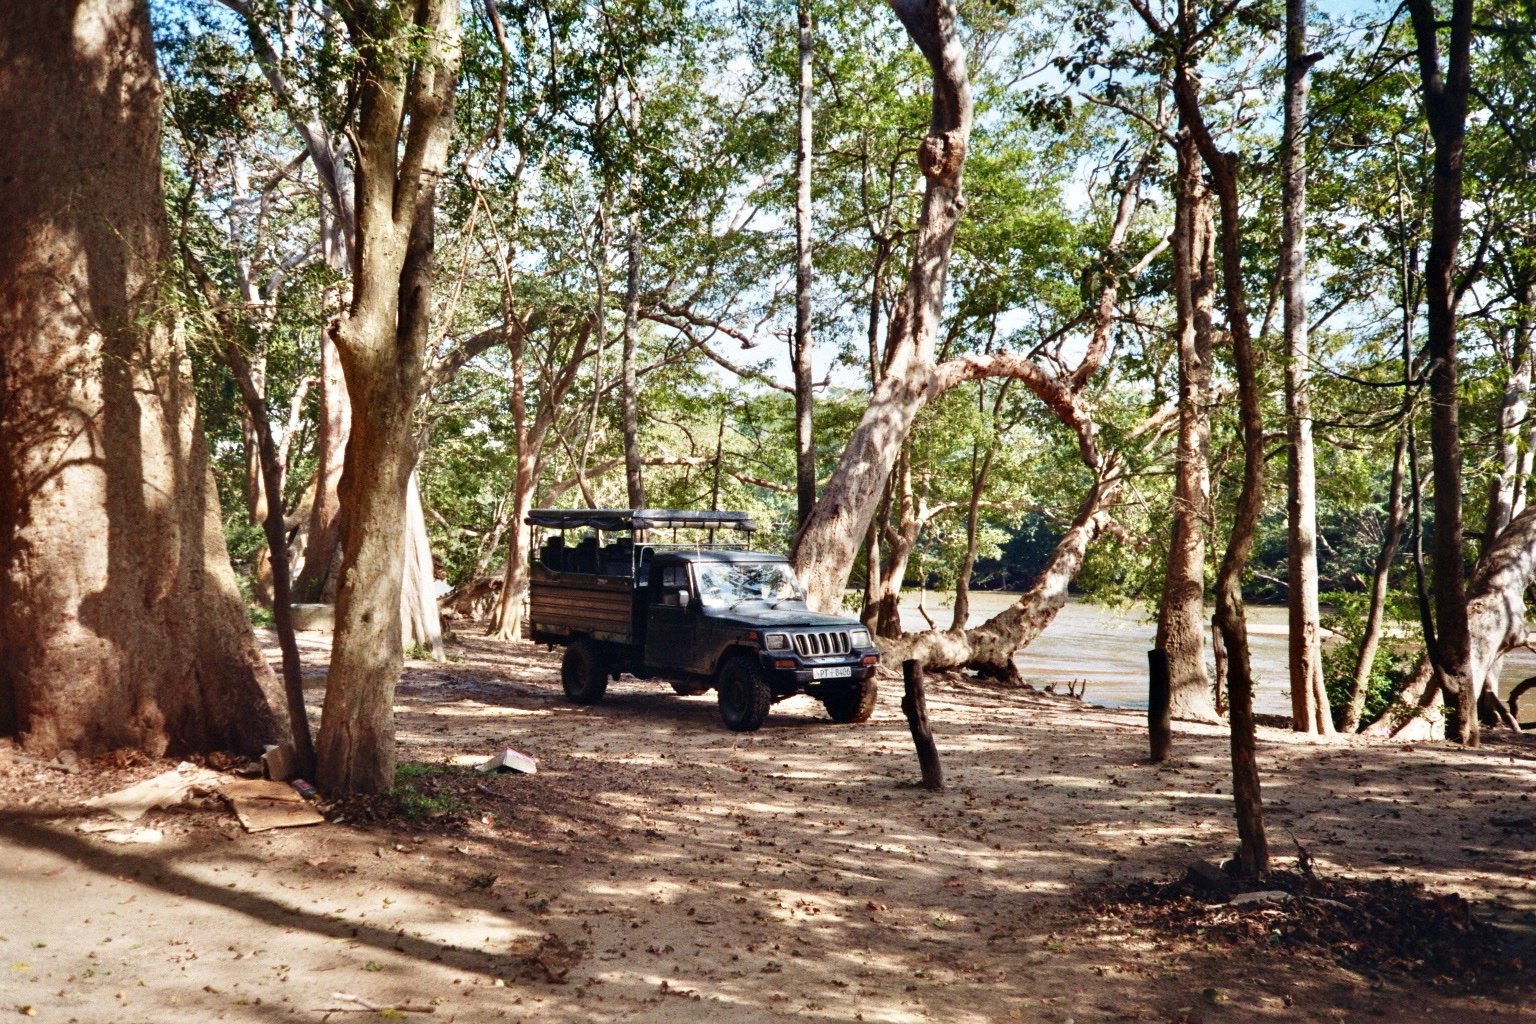 Sri Lanka analog - 27